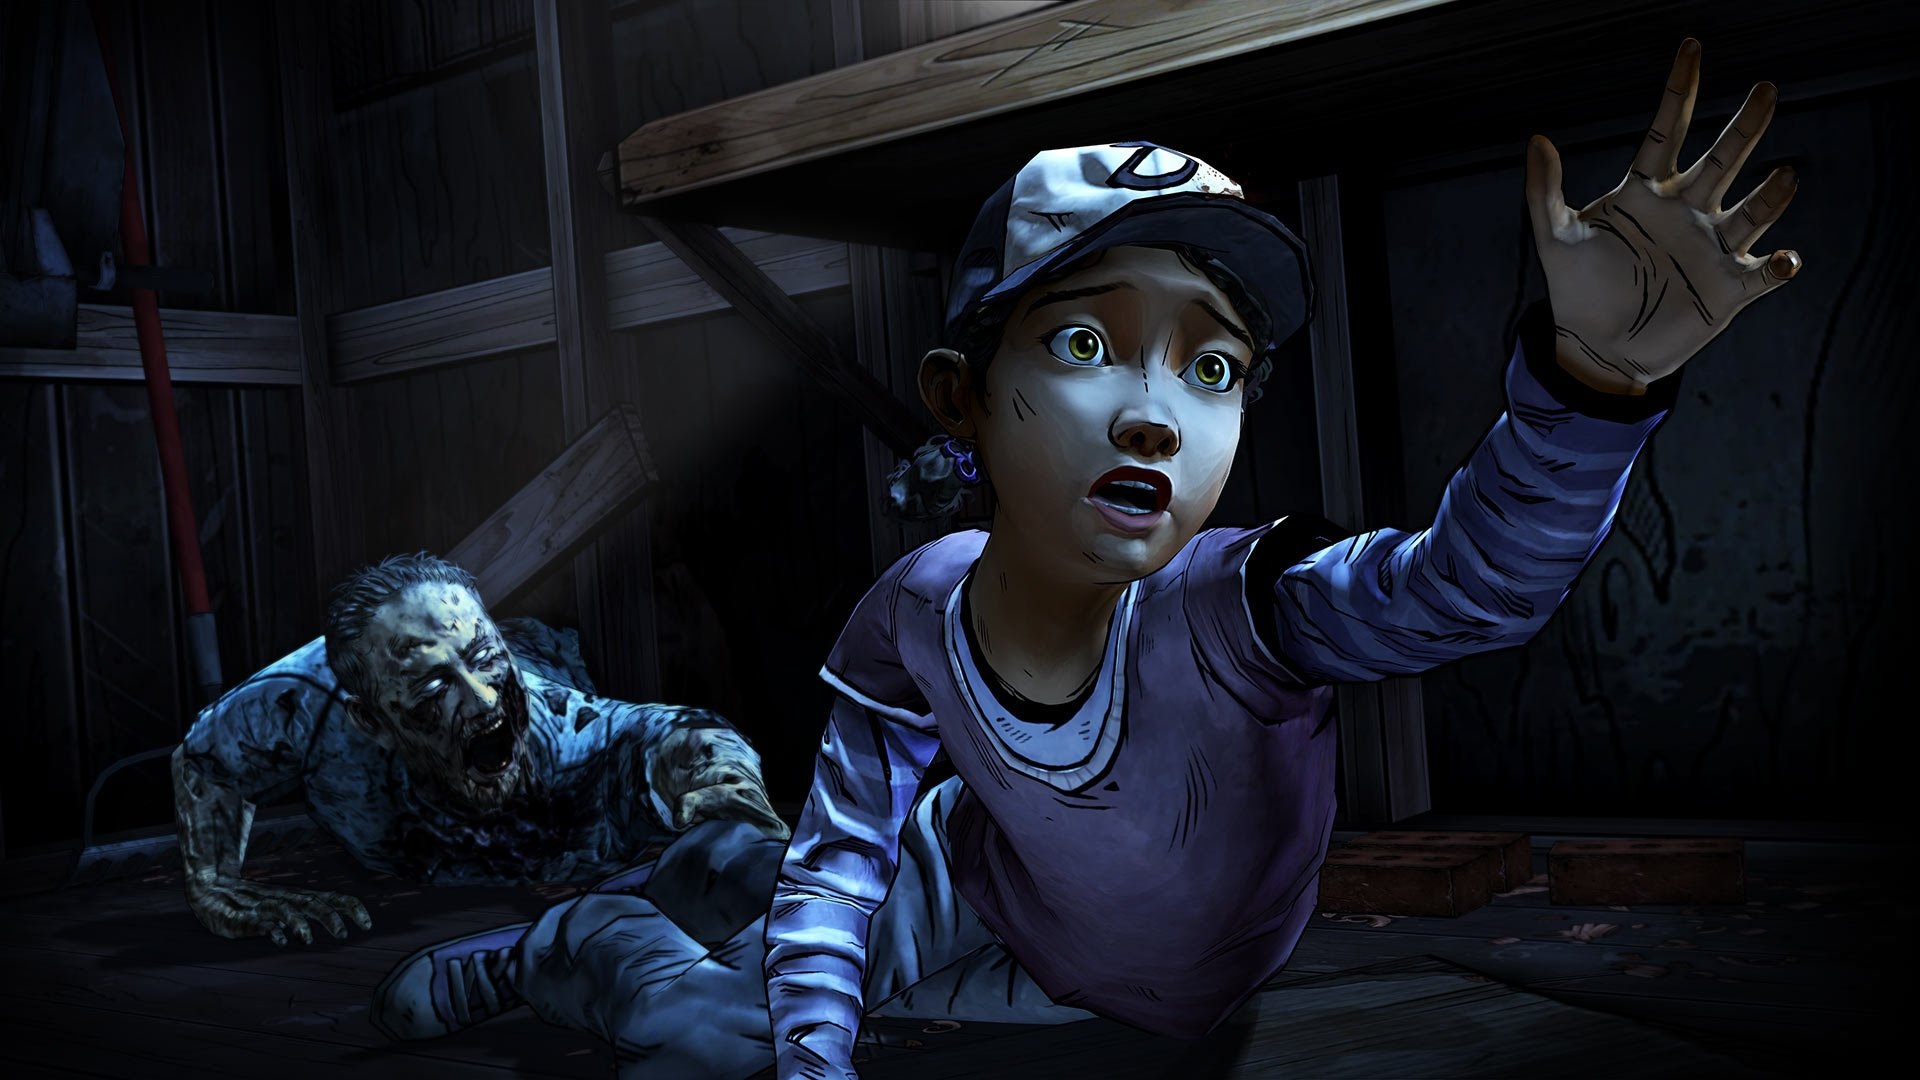 The Walking Dead The Game Season 2 wallpaper background 1920x1080